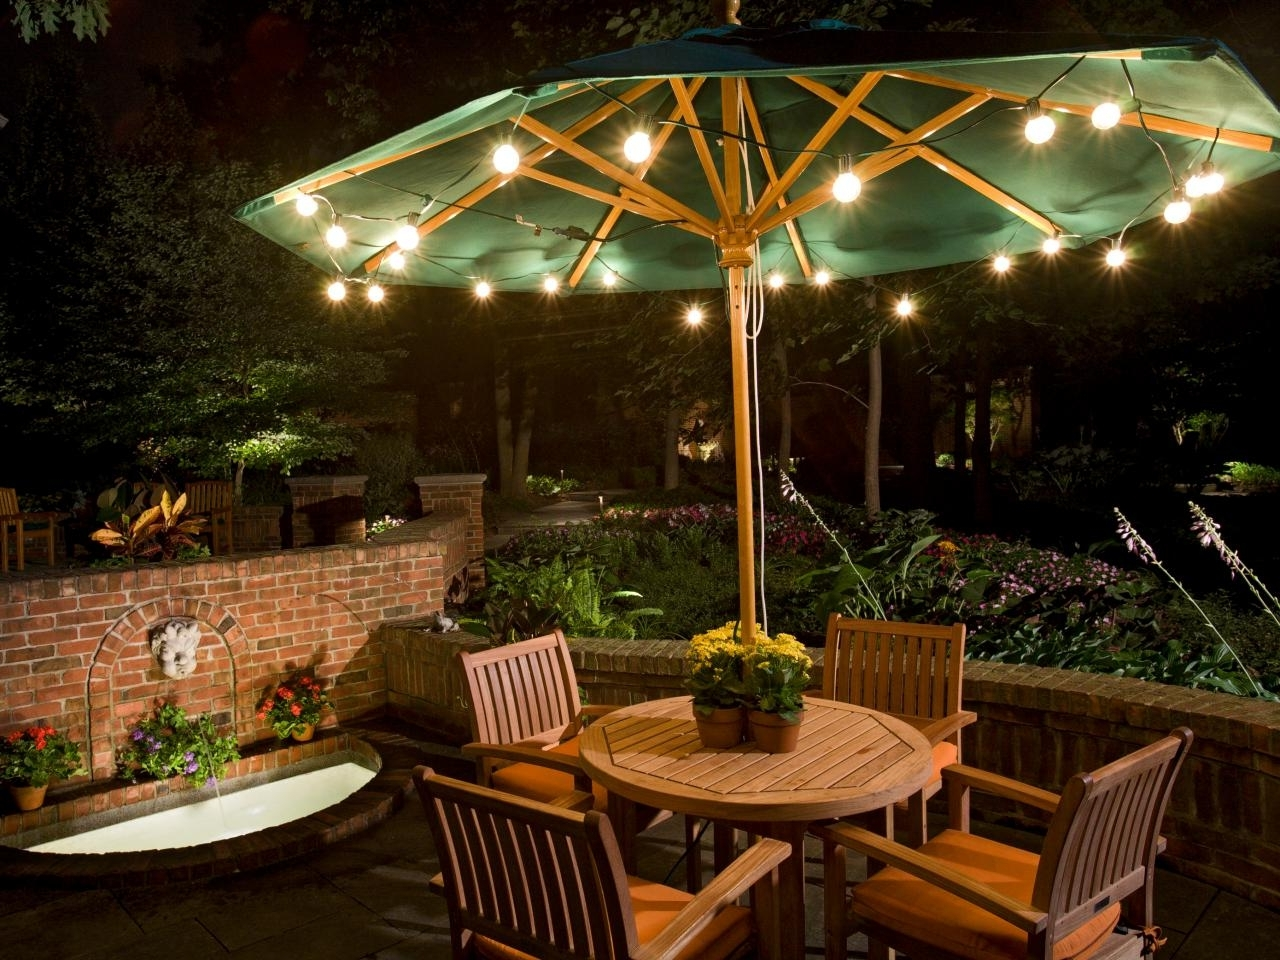 Hgtv's Intended For Outdoor Hanging String Lanterns (View 6 of 20)